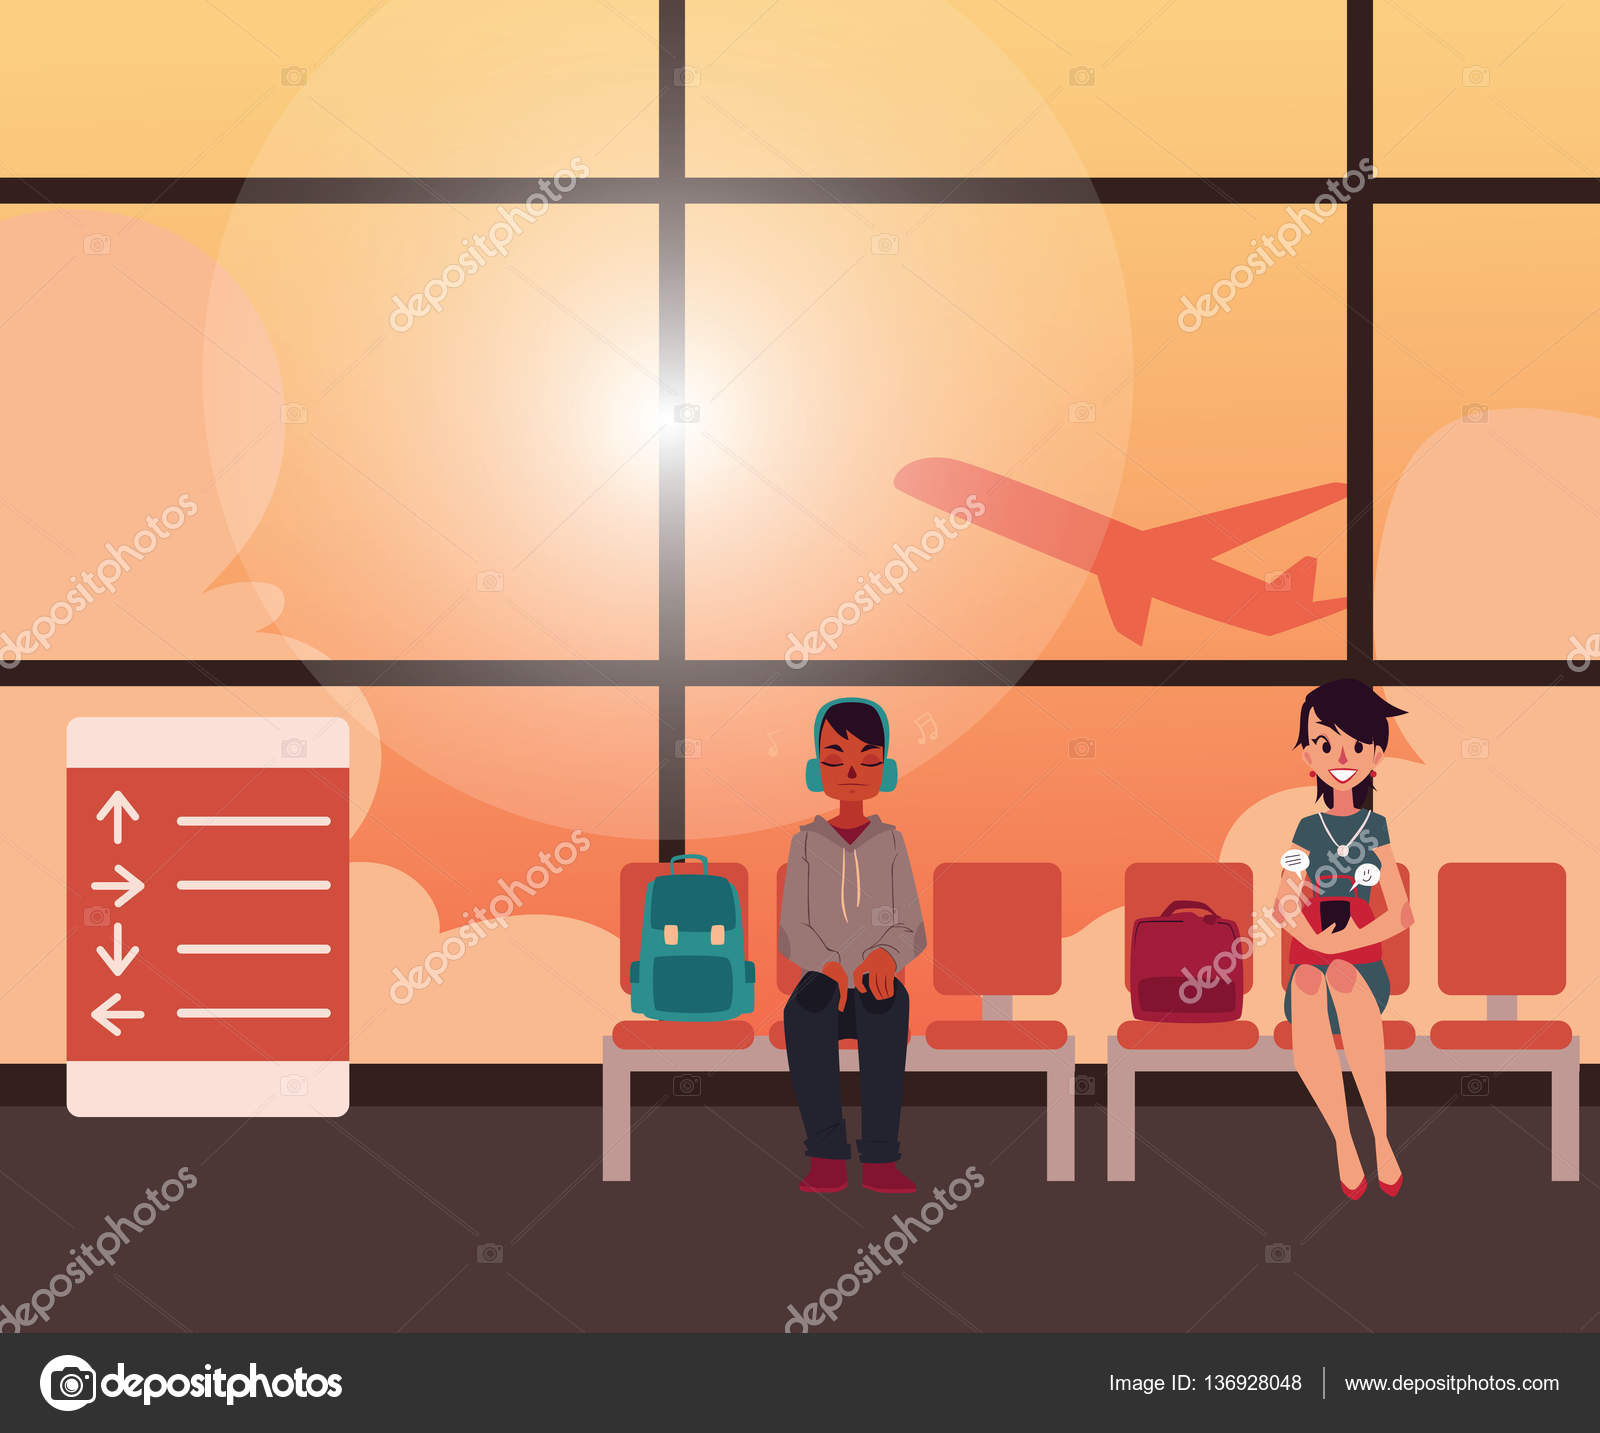 Lounge clipart boy room #2